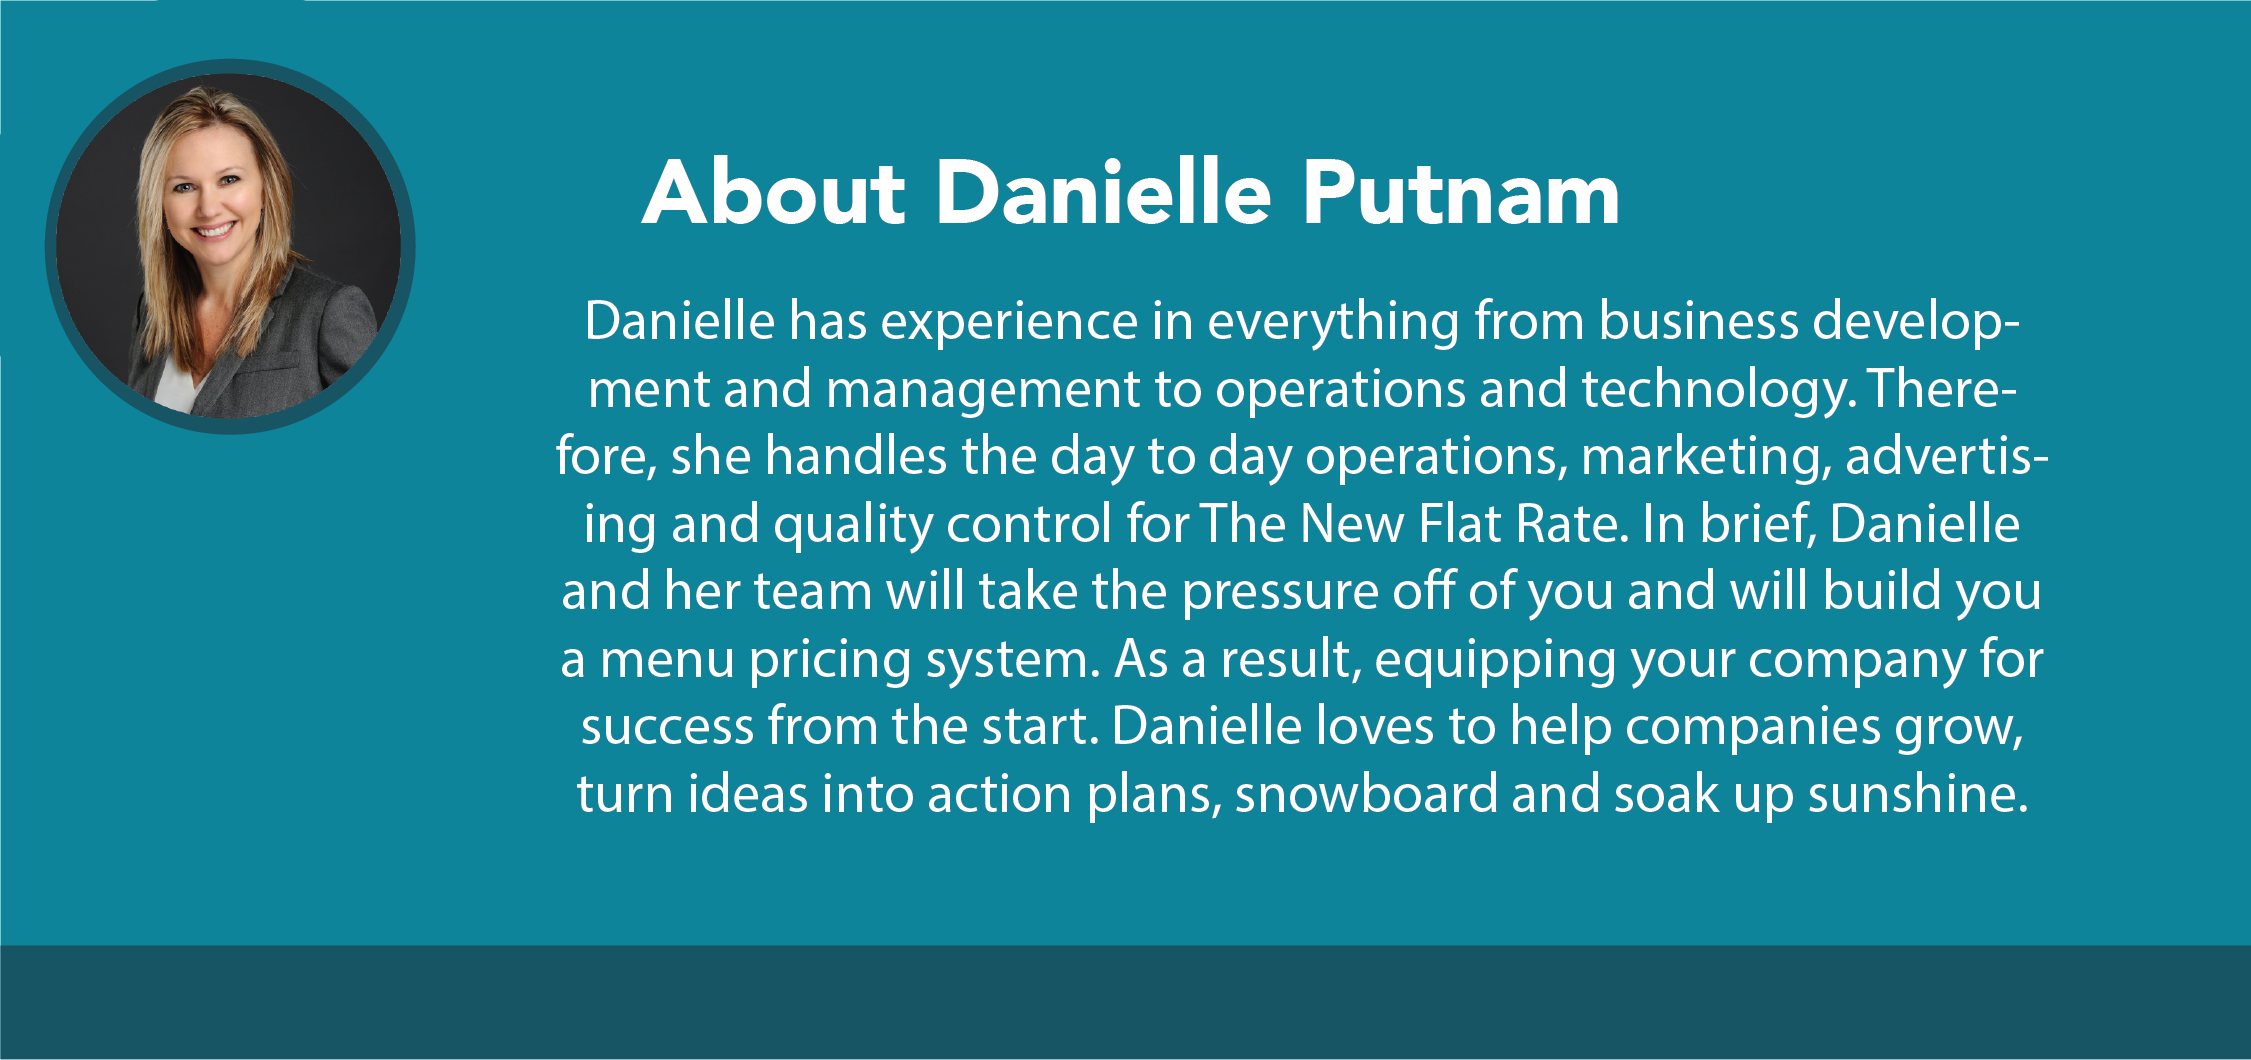 Danielle Putnam is the President of The New Flat Rate